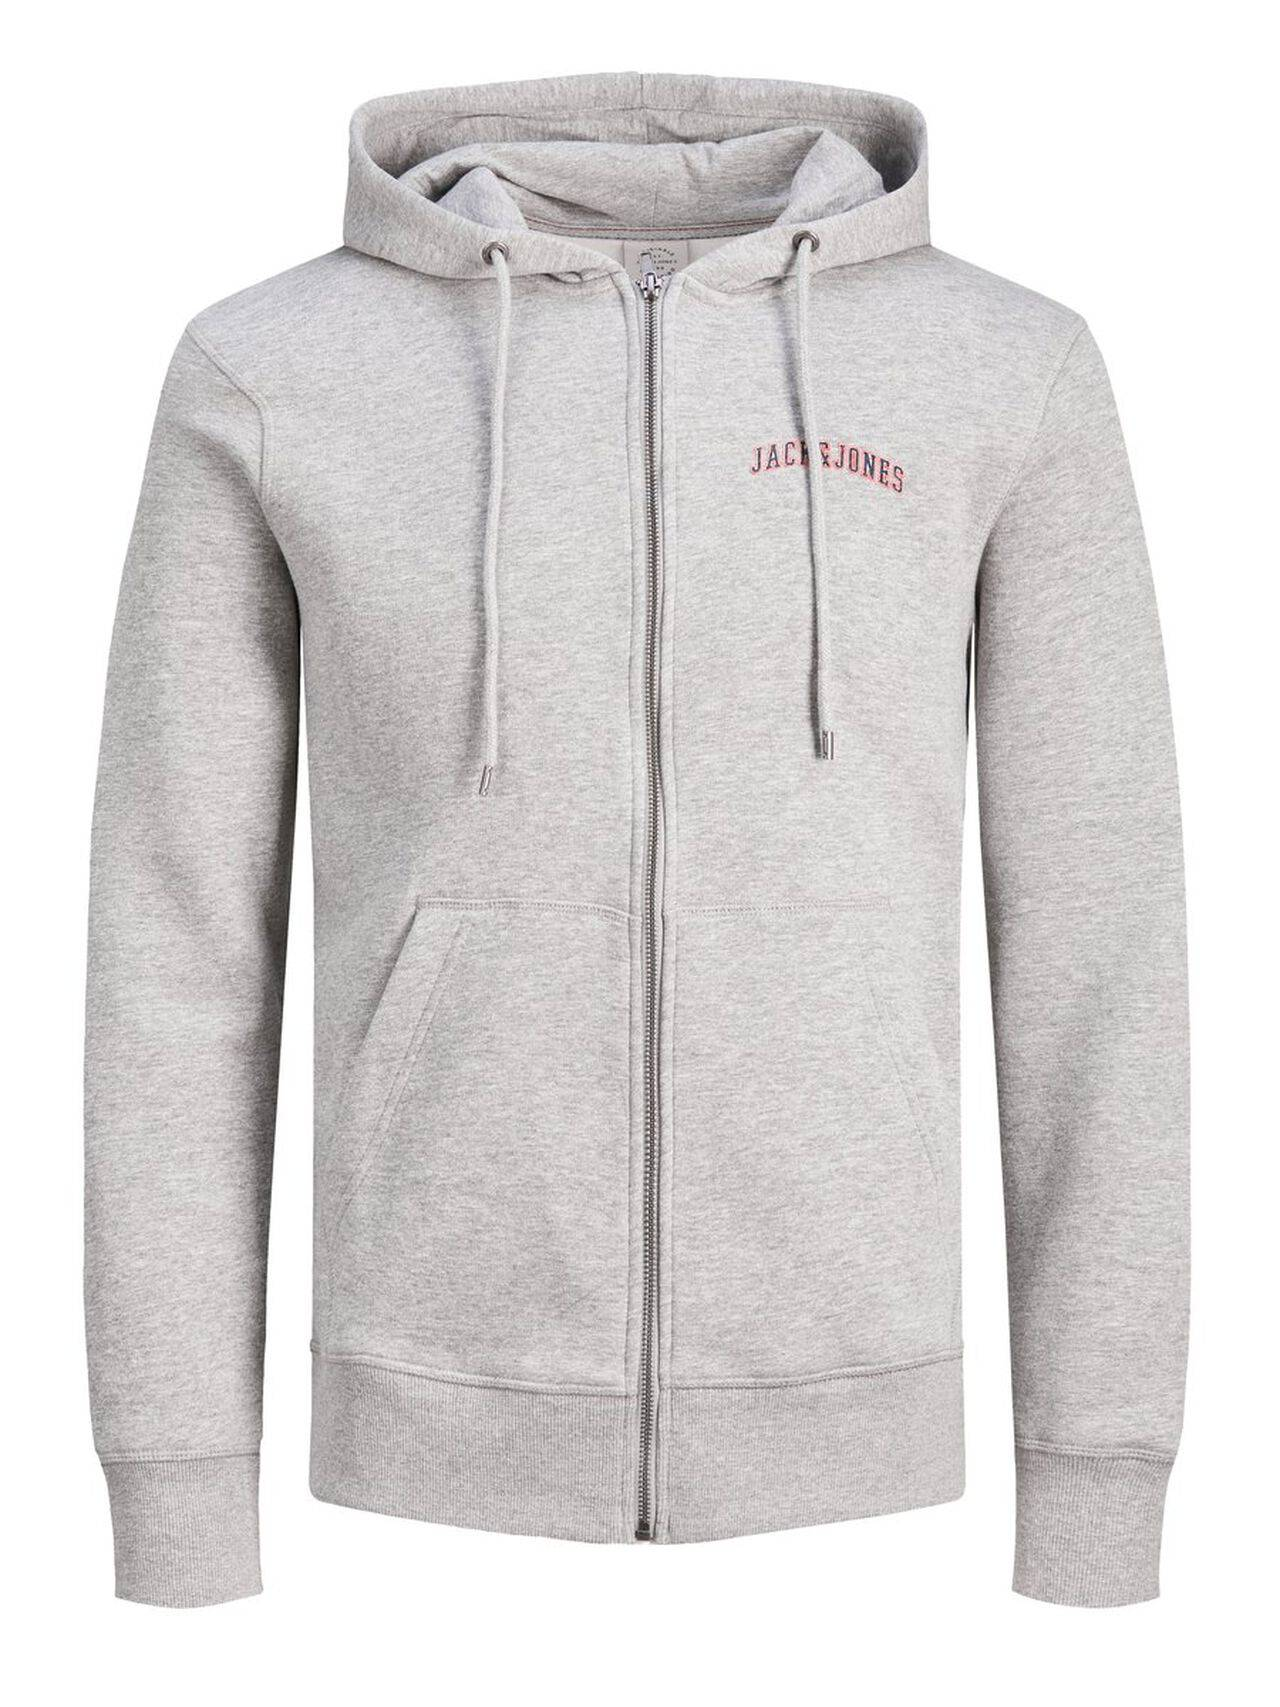 JACK & JONES Zip Up Hoodie Men Grey LightGreyMelange